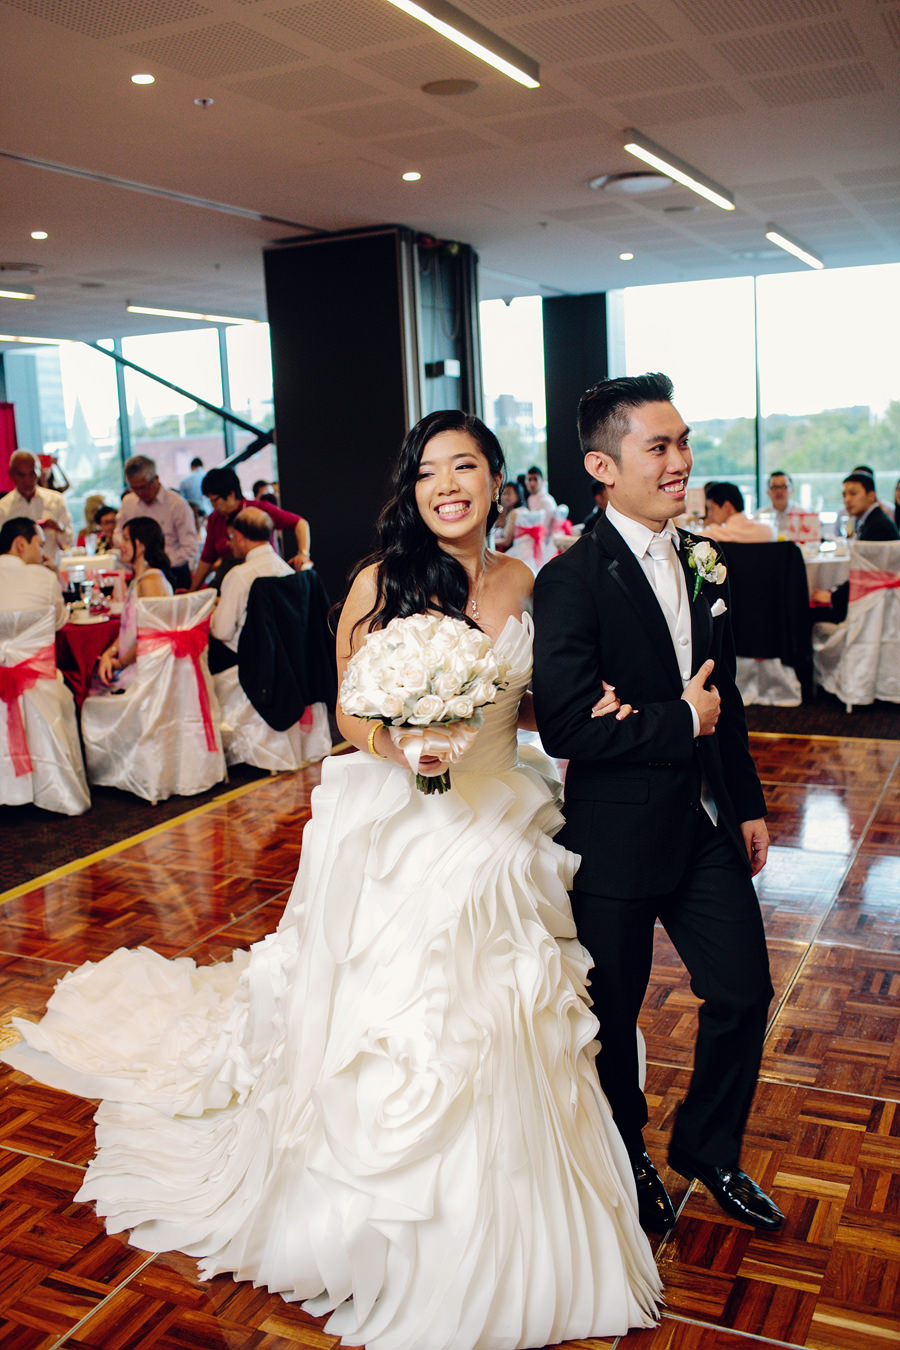 Parramatta Phoenix Wedding Photography: Reception